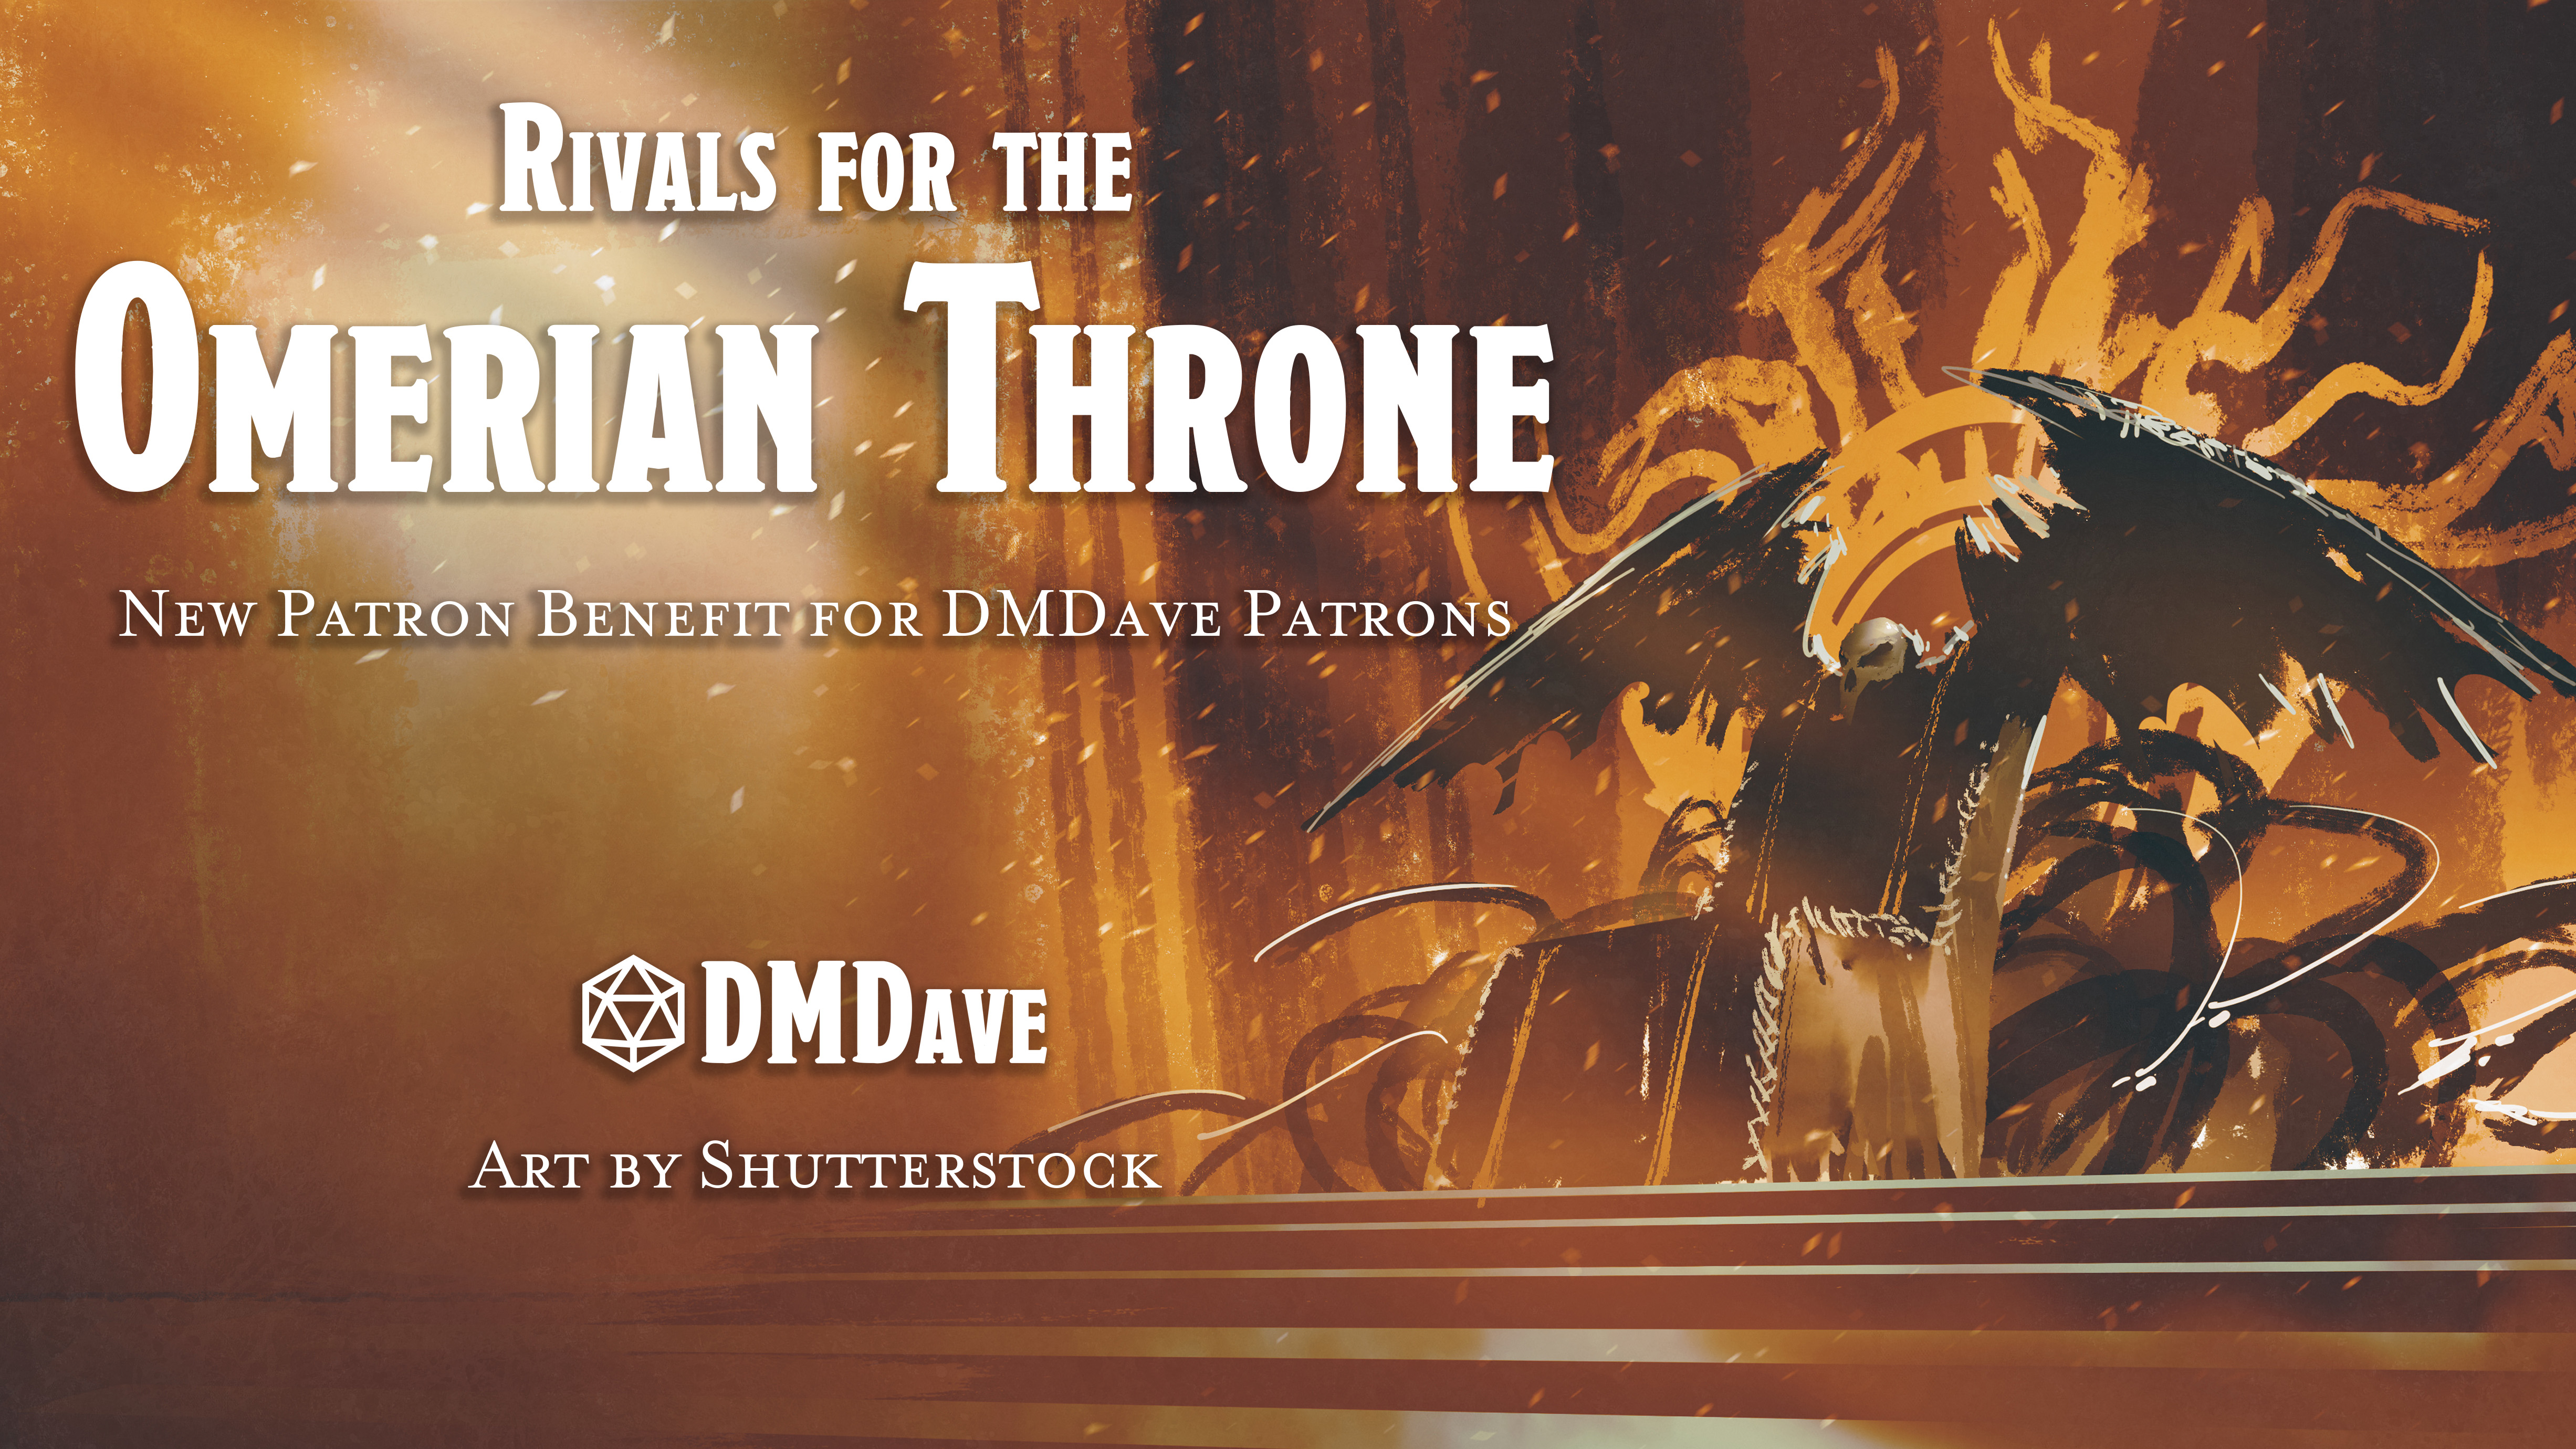 Rivals for the Omerian Throne | New Benefit for DMDave Patrons